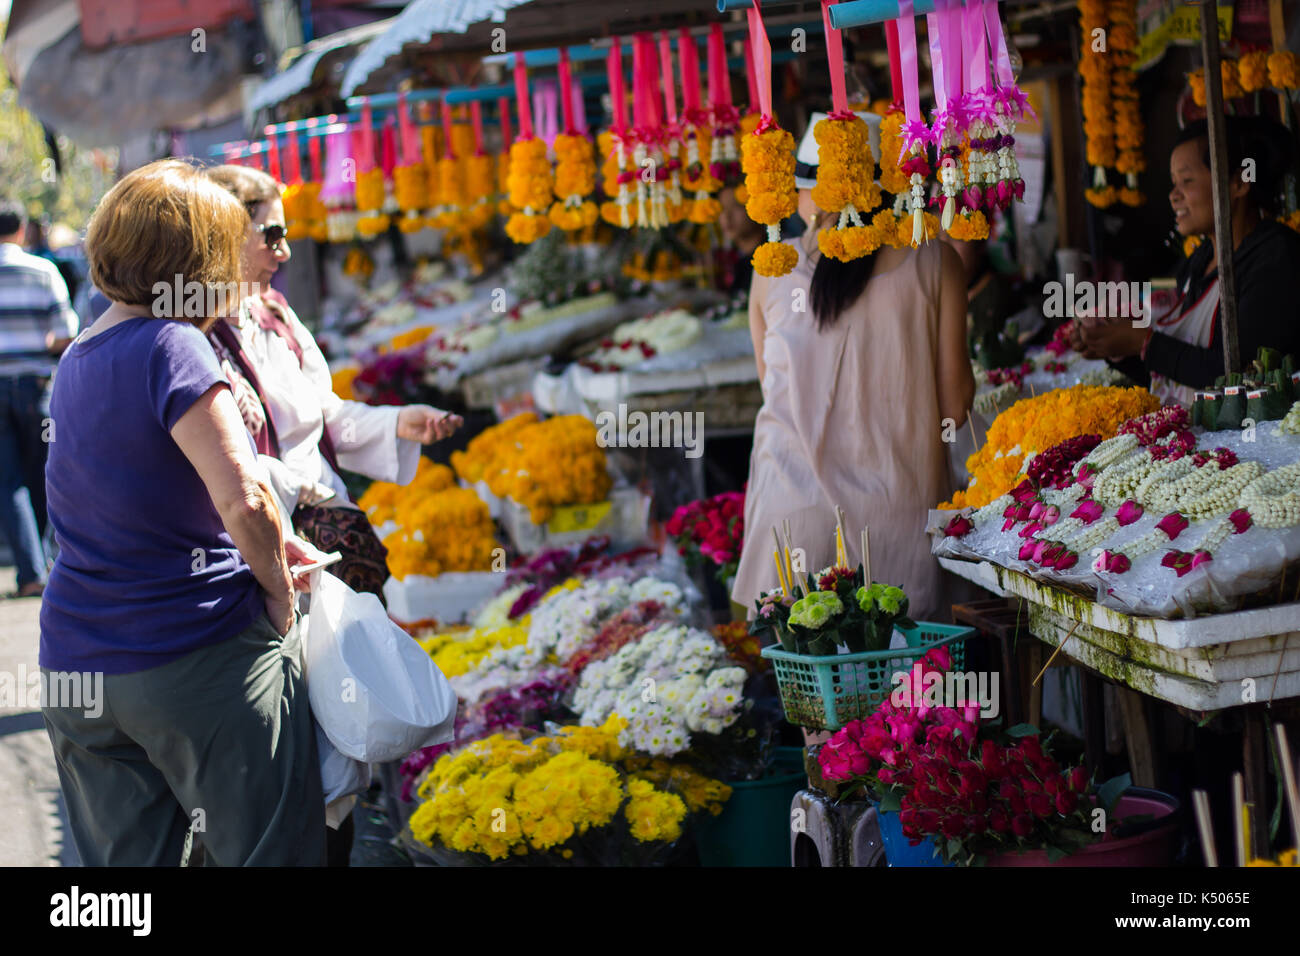 Chiang Mai, Thailand - Feb 2, 2014: Tourist shop flower at market in Chiang Mai - Stock Image